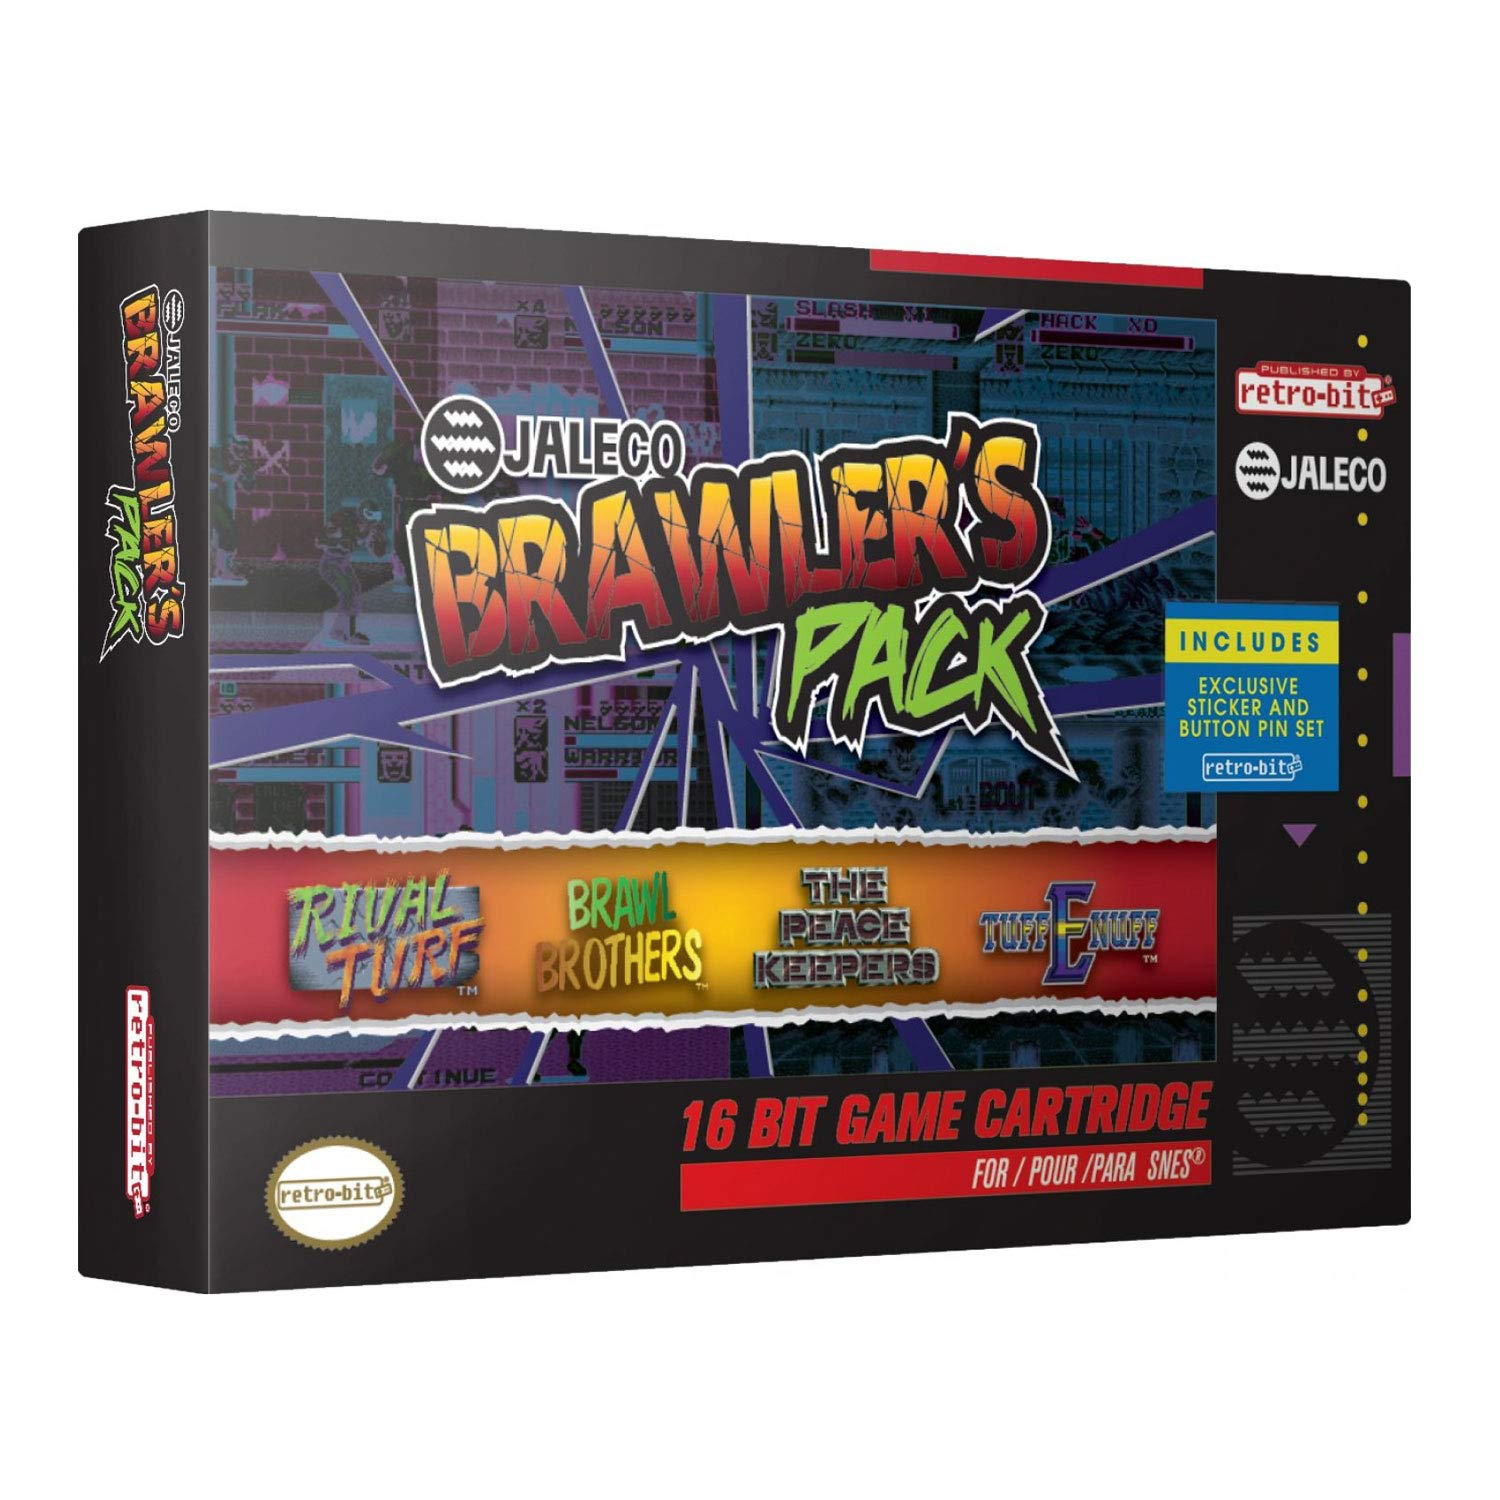 Retro-Bit Jaleco Brawler's Pack SNES Cartridge - 4 Games in 1 - Super NES